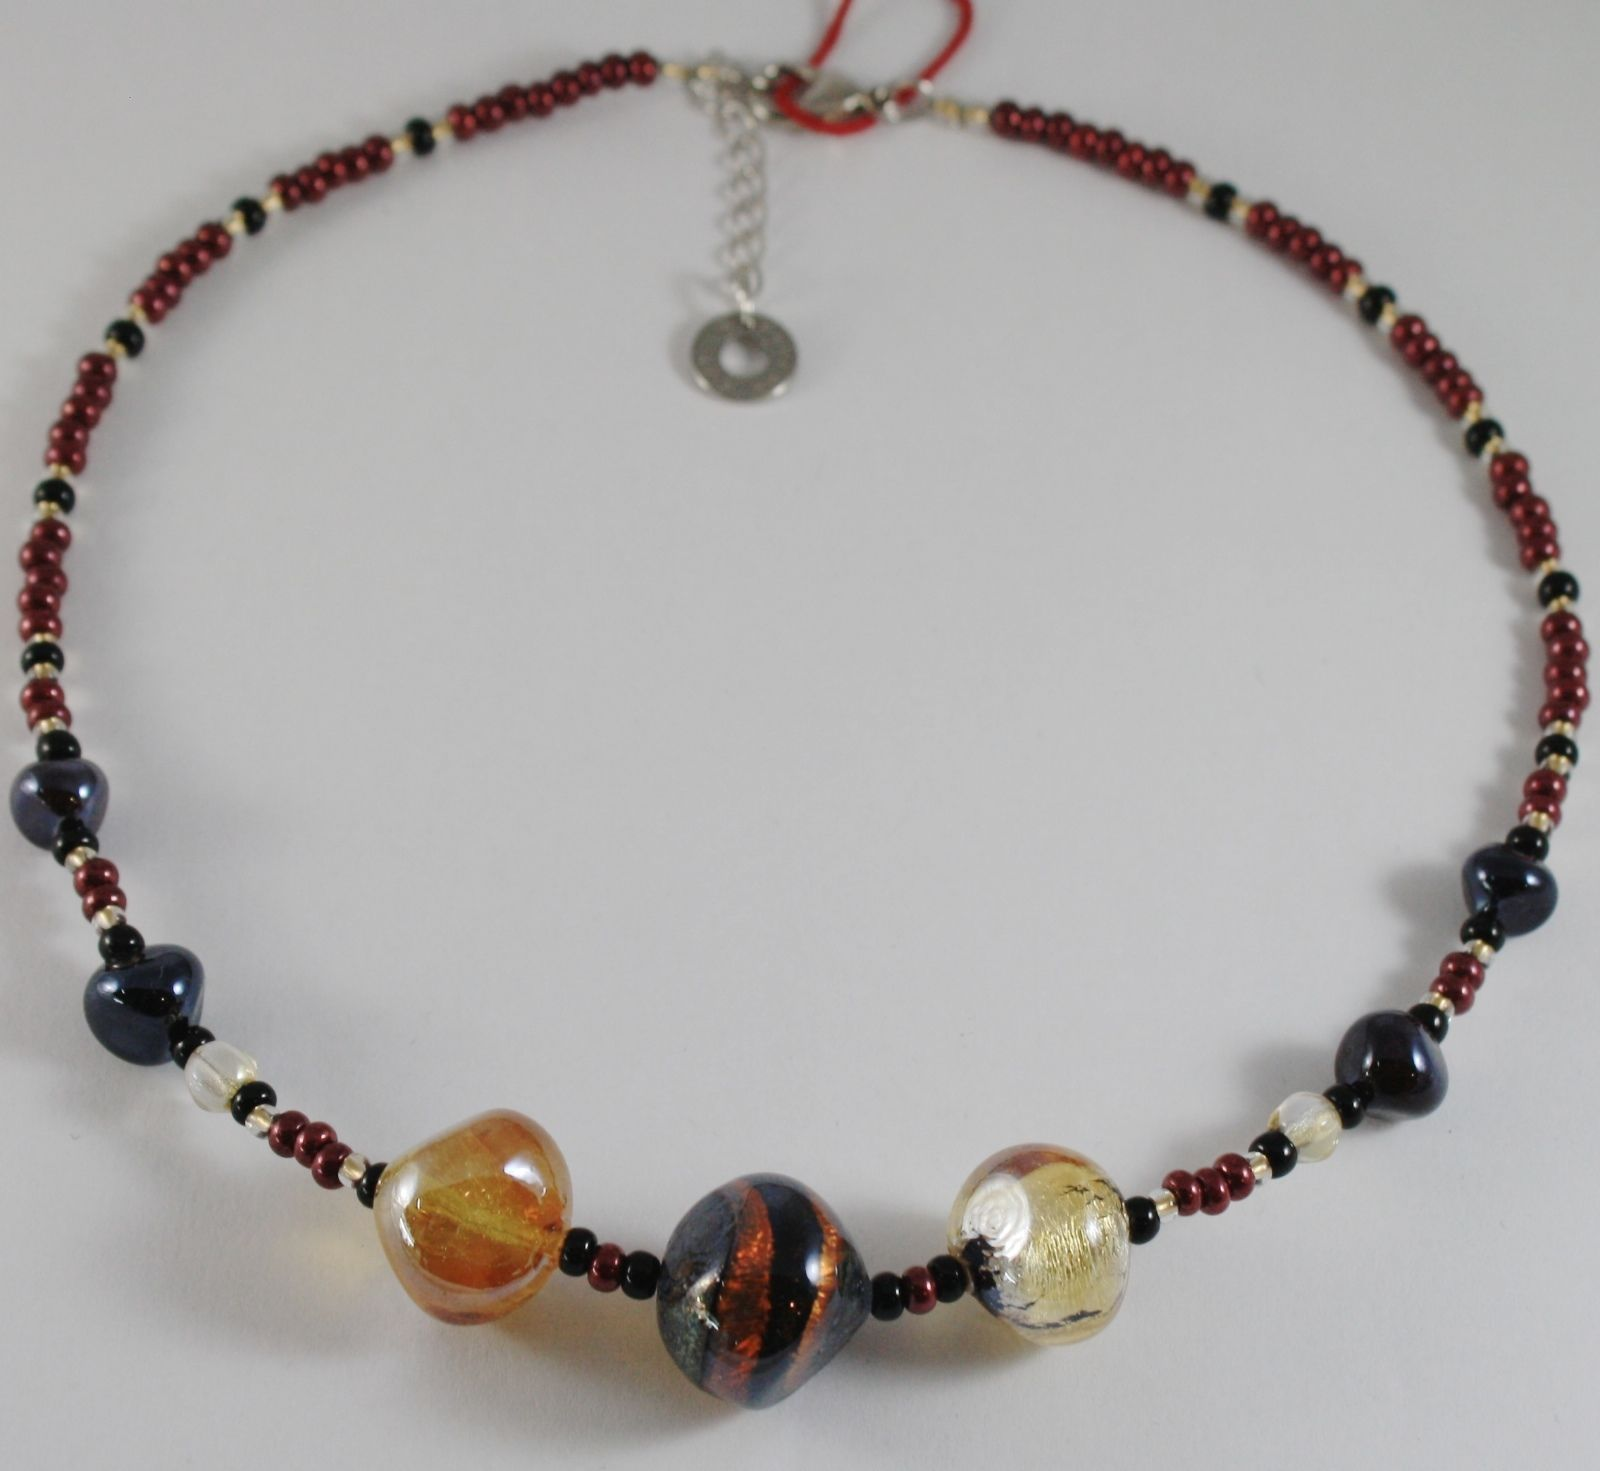 ANTICA MURRINA VENEZIA NECKLACE MULTICOLOR, BIG AMBER AND BLACK NUGGETS